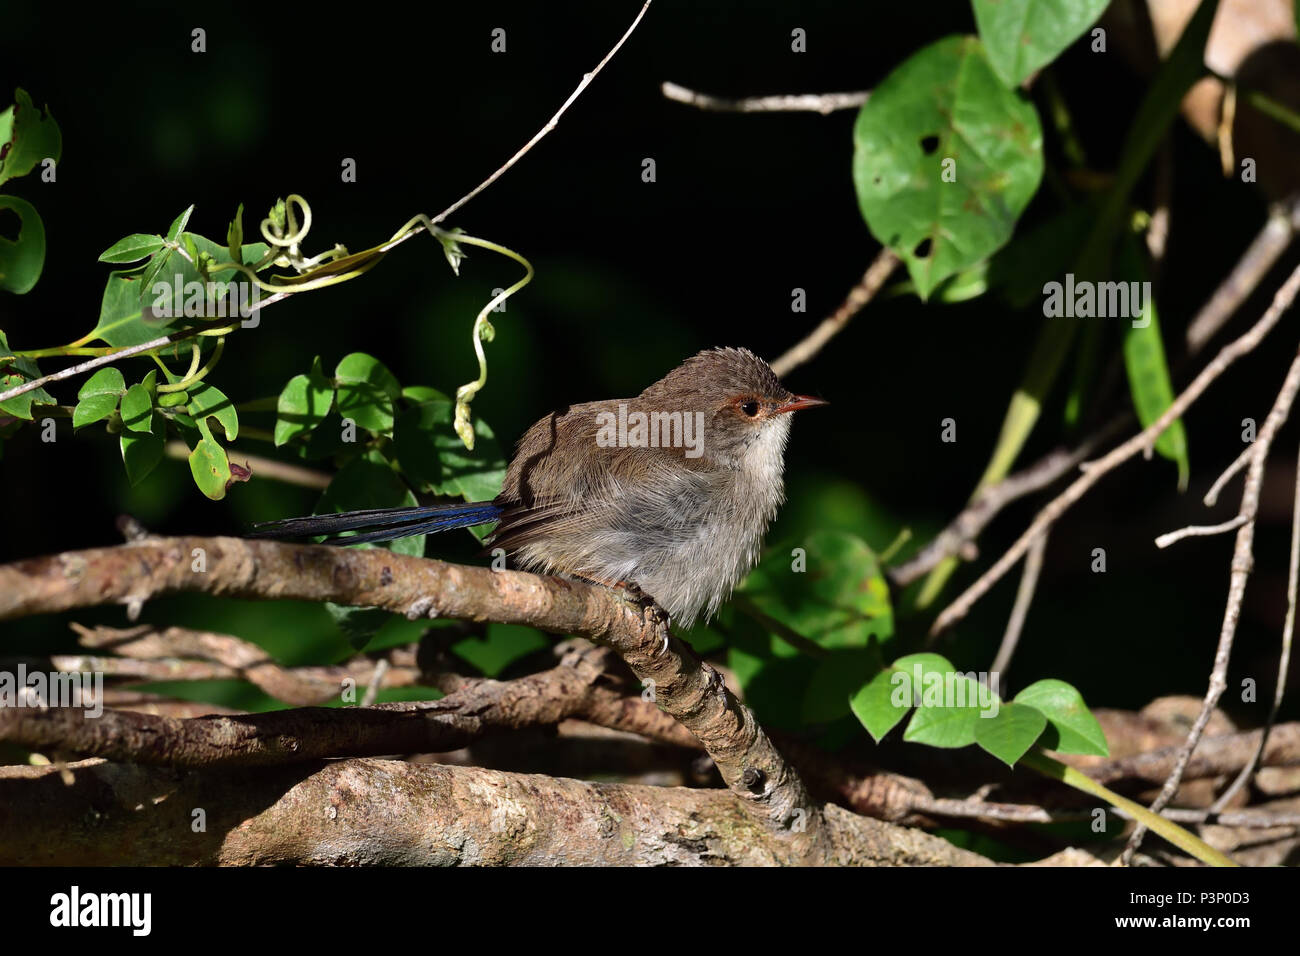 An Australian, Queensland Juvenile Male Superb Fairy-wren ( Malurus cyaneus ) perched on a tree branch looking for food - Stock Image